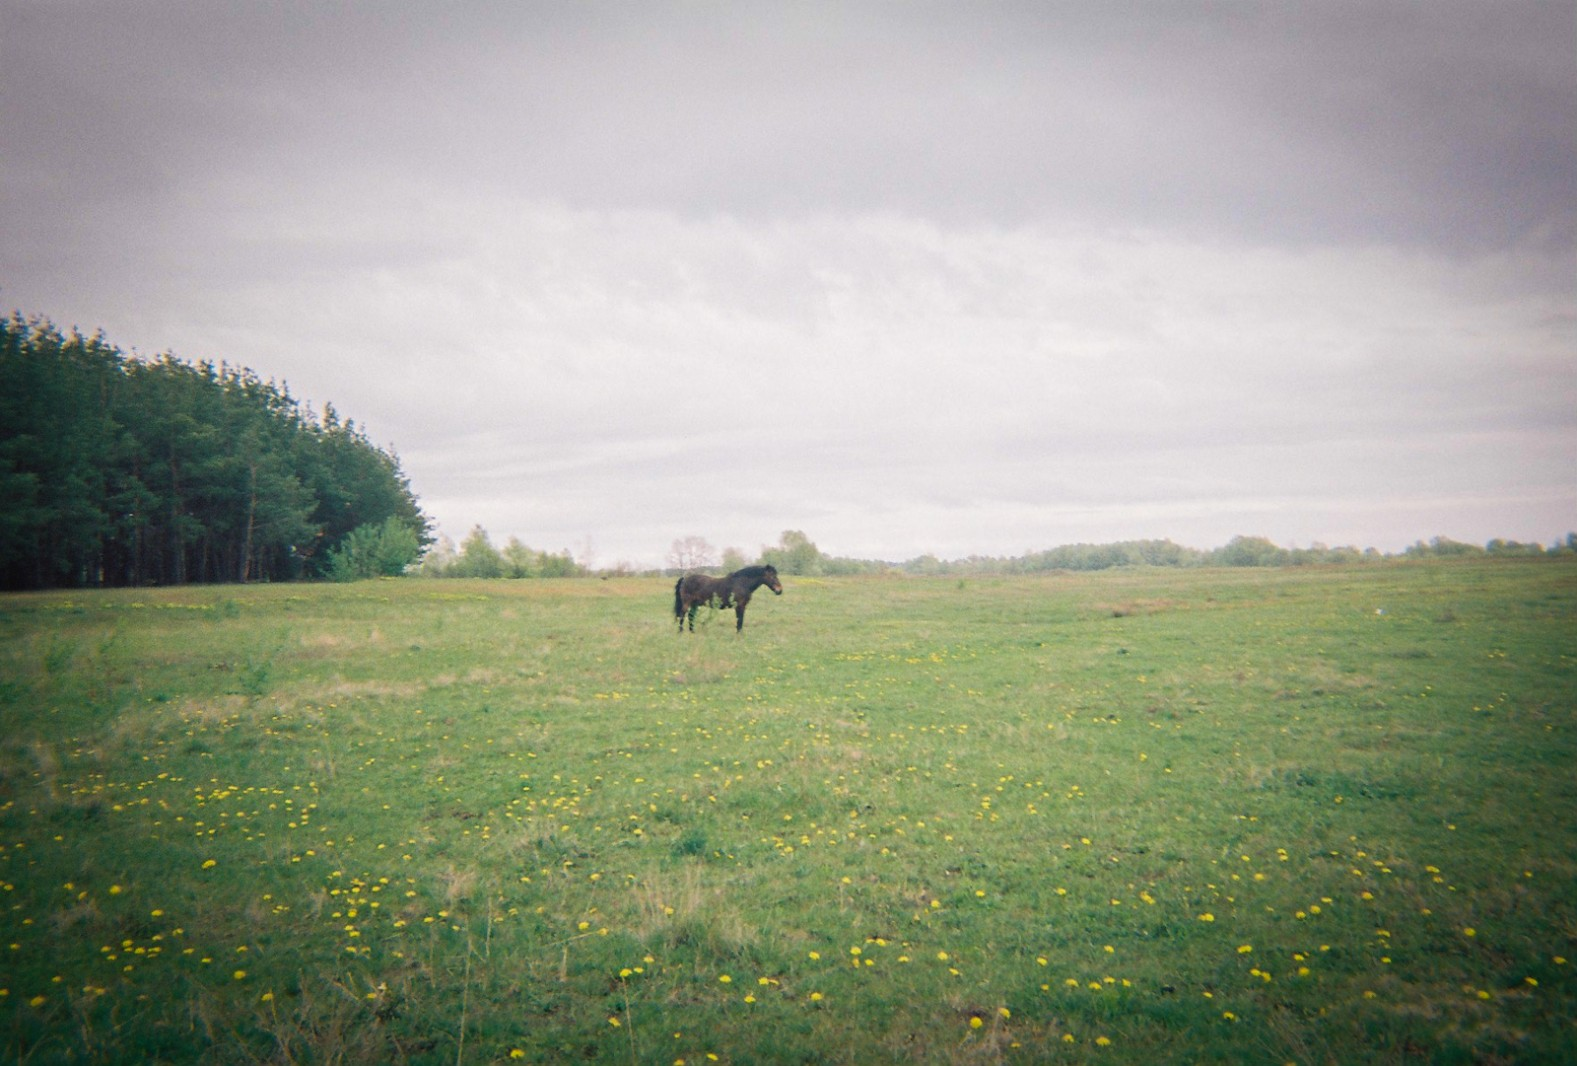 A horse stands in a field near Chernobyl